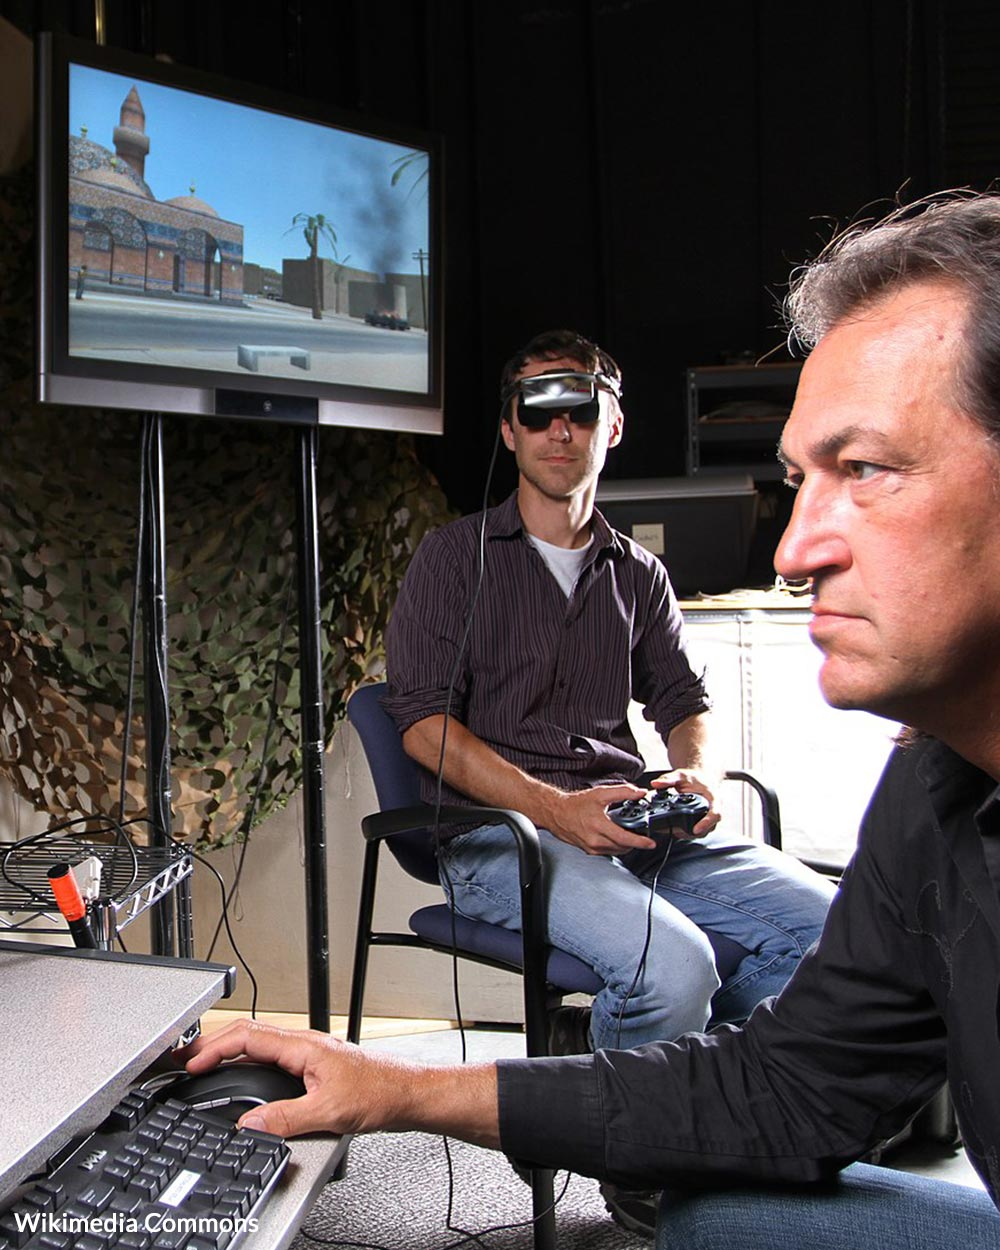 Virtual reality treatment is one method of helping veterans overcome PTSD.